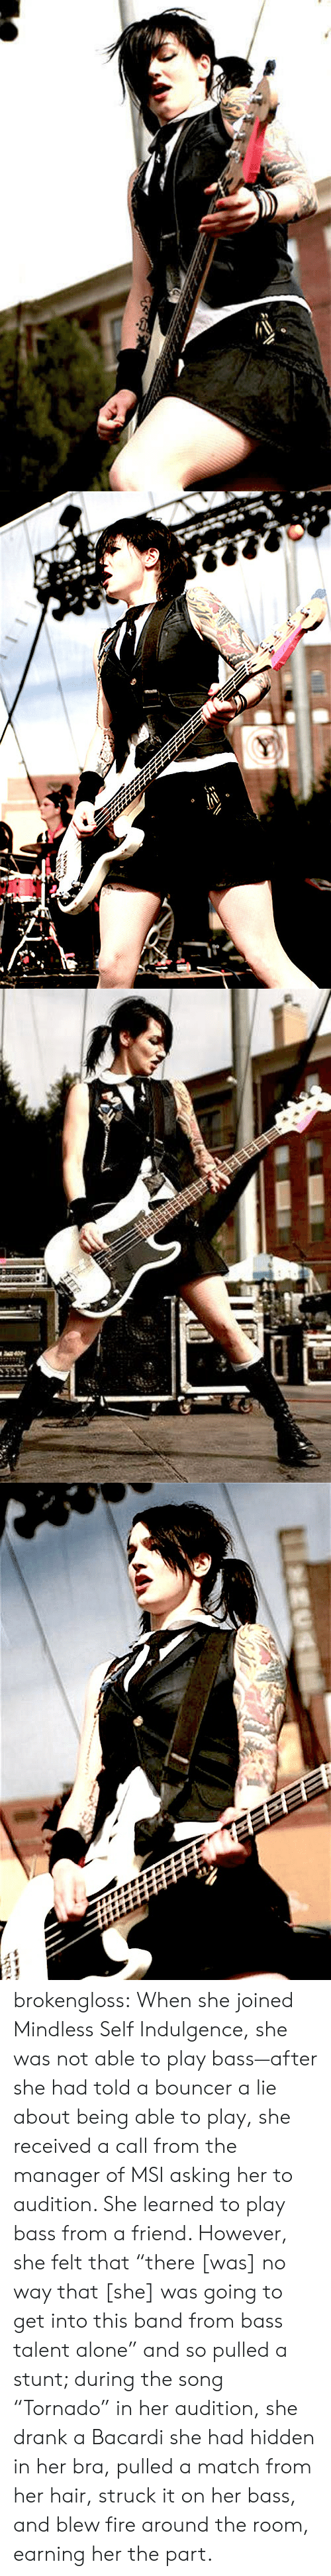 "bra: brokengloss: When she joined Mindless Self Indulgence, she was not able to play bass—after she had told a bouncer a lie about being able to play, she received a call from the manager of MSI asking her to audition. She learned to play bass from a friend. However, she felt that ""there [was] no way that [she] was going to get into this band from bass talent alone"" and so pulled a stunt; during the song ""Tornado"" in her audition, she drank a Bacardi she had hidden in her bra, pulled a match from her hair, struck it on her bass, and blew fire around the room, earning her the part."